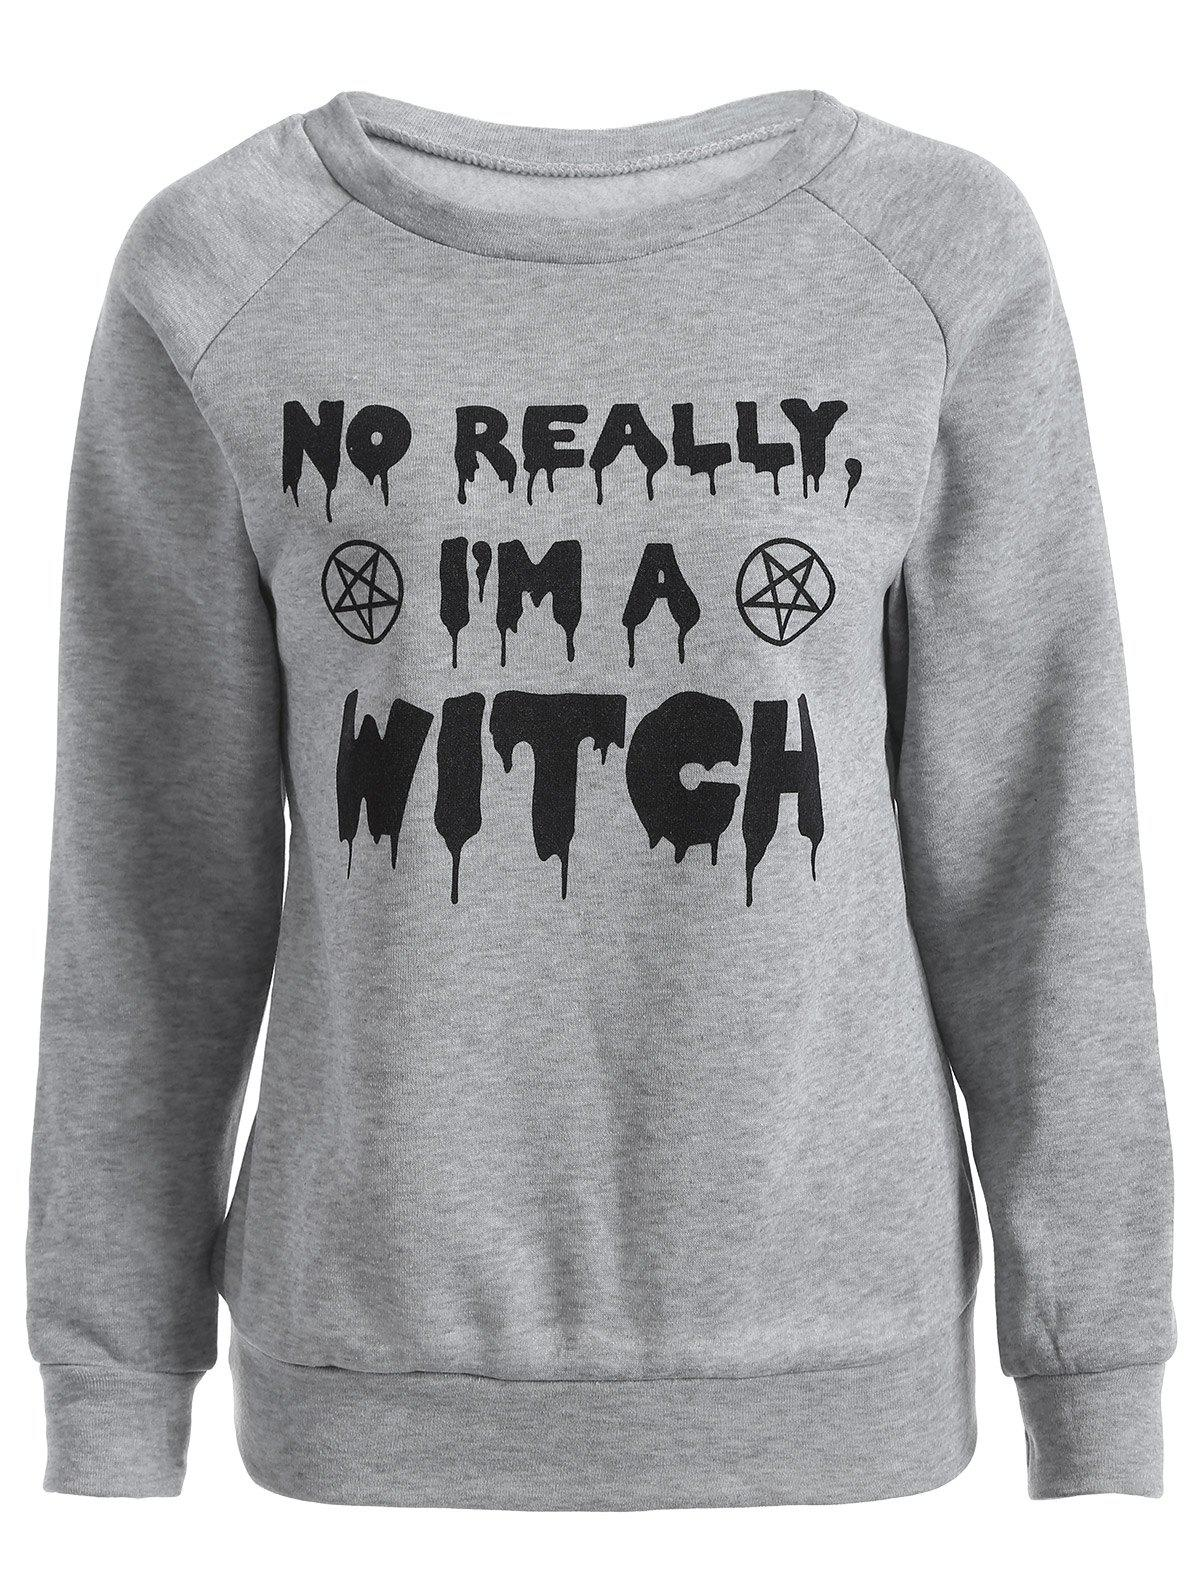 I Am A Witch Sweatshirt - GRAY 2XL